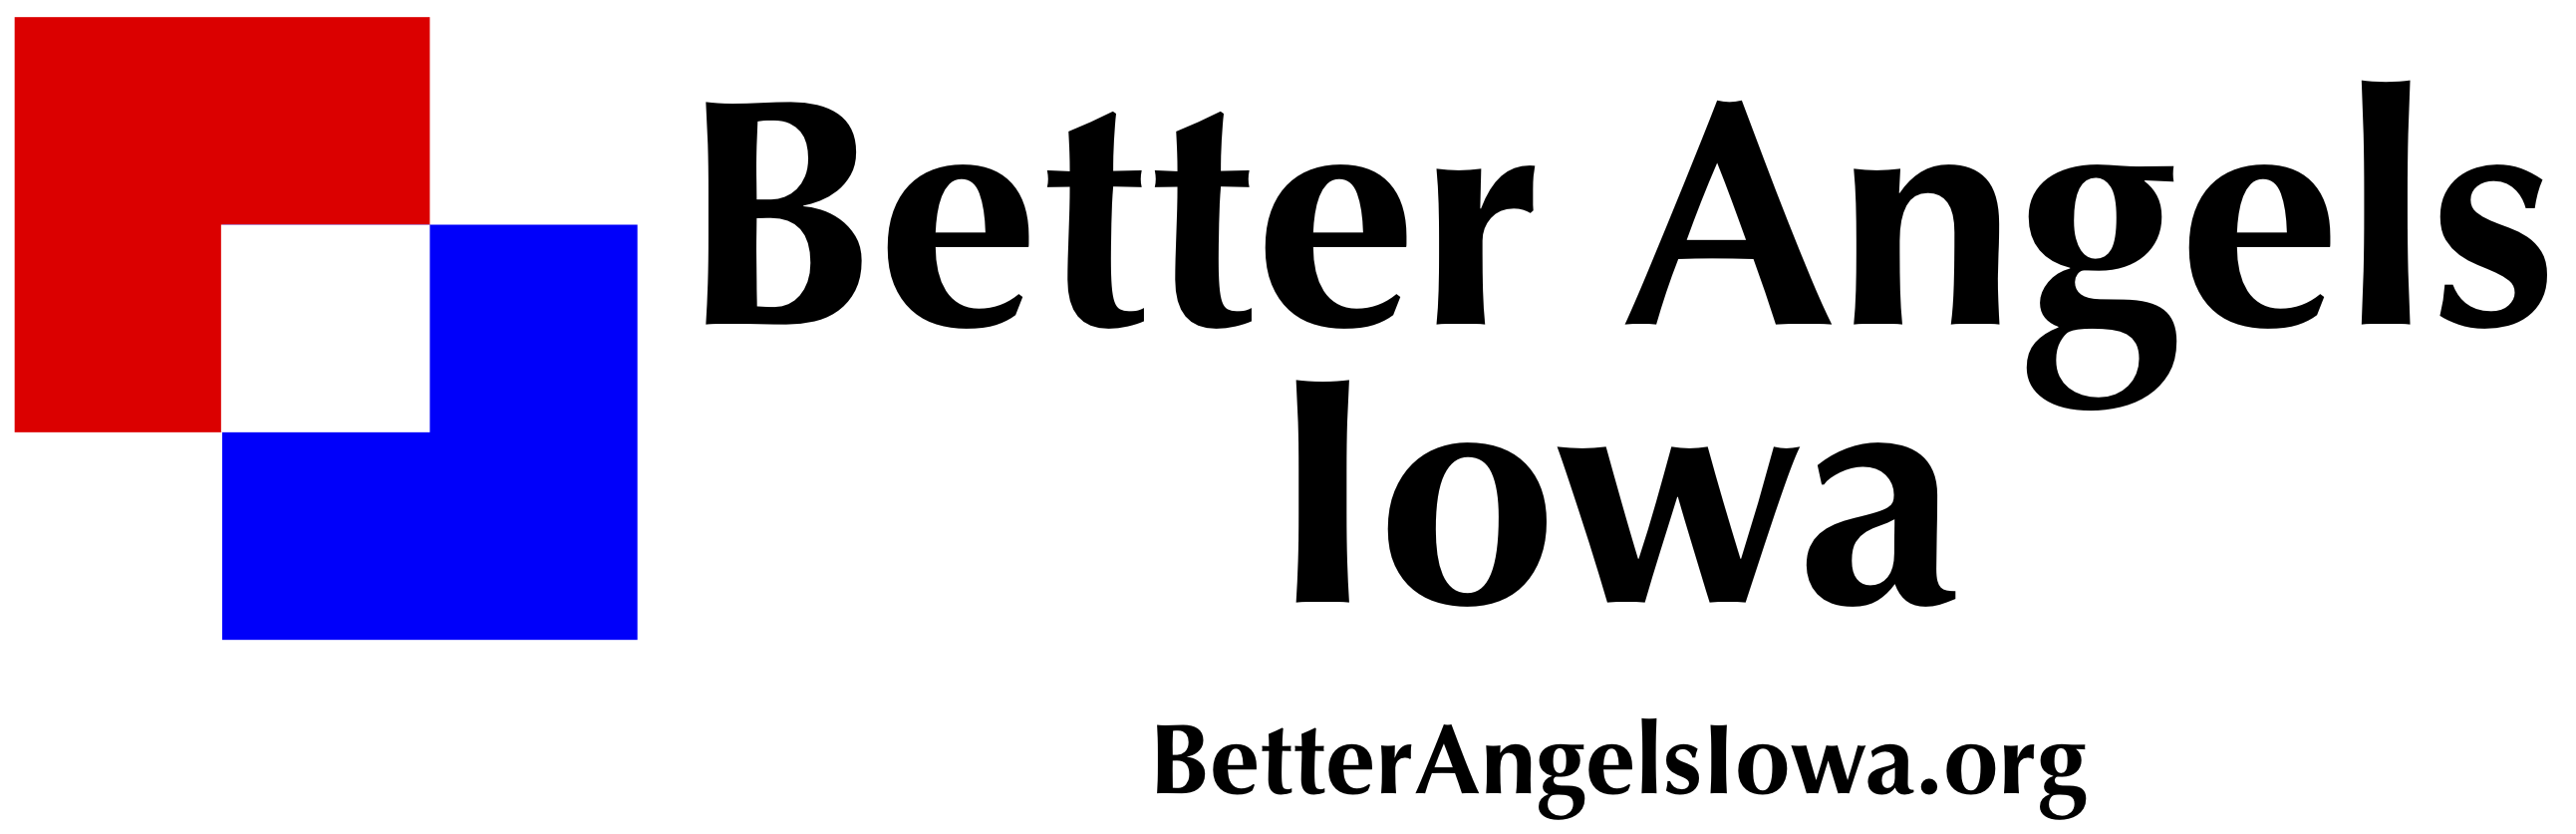 Better Angels Iowa Logo 2 White